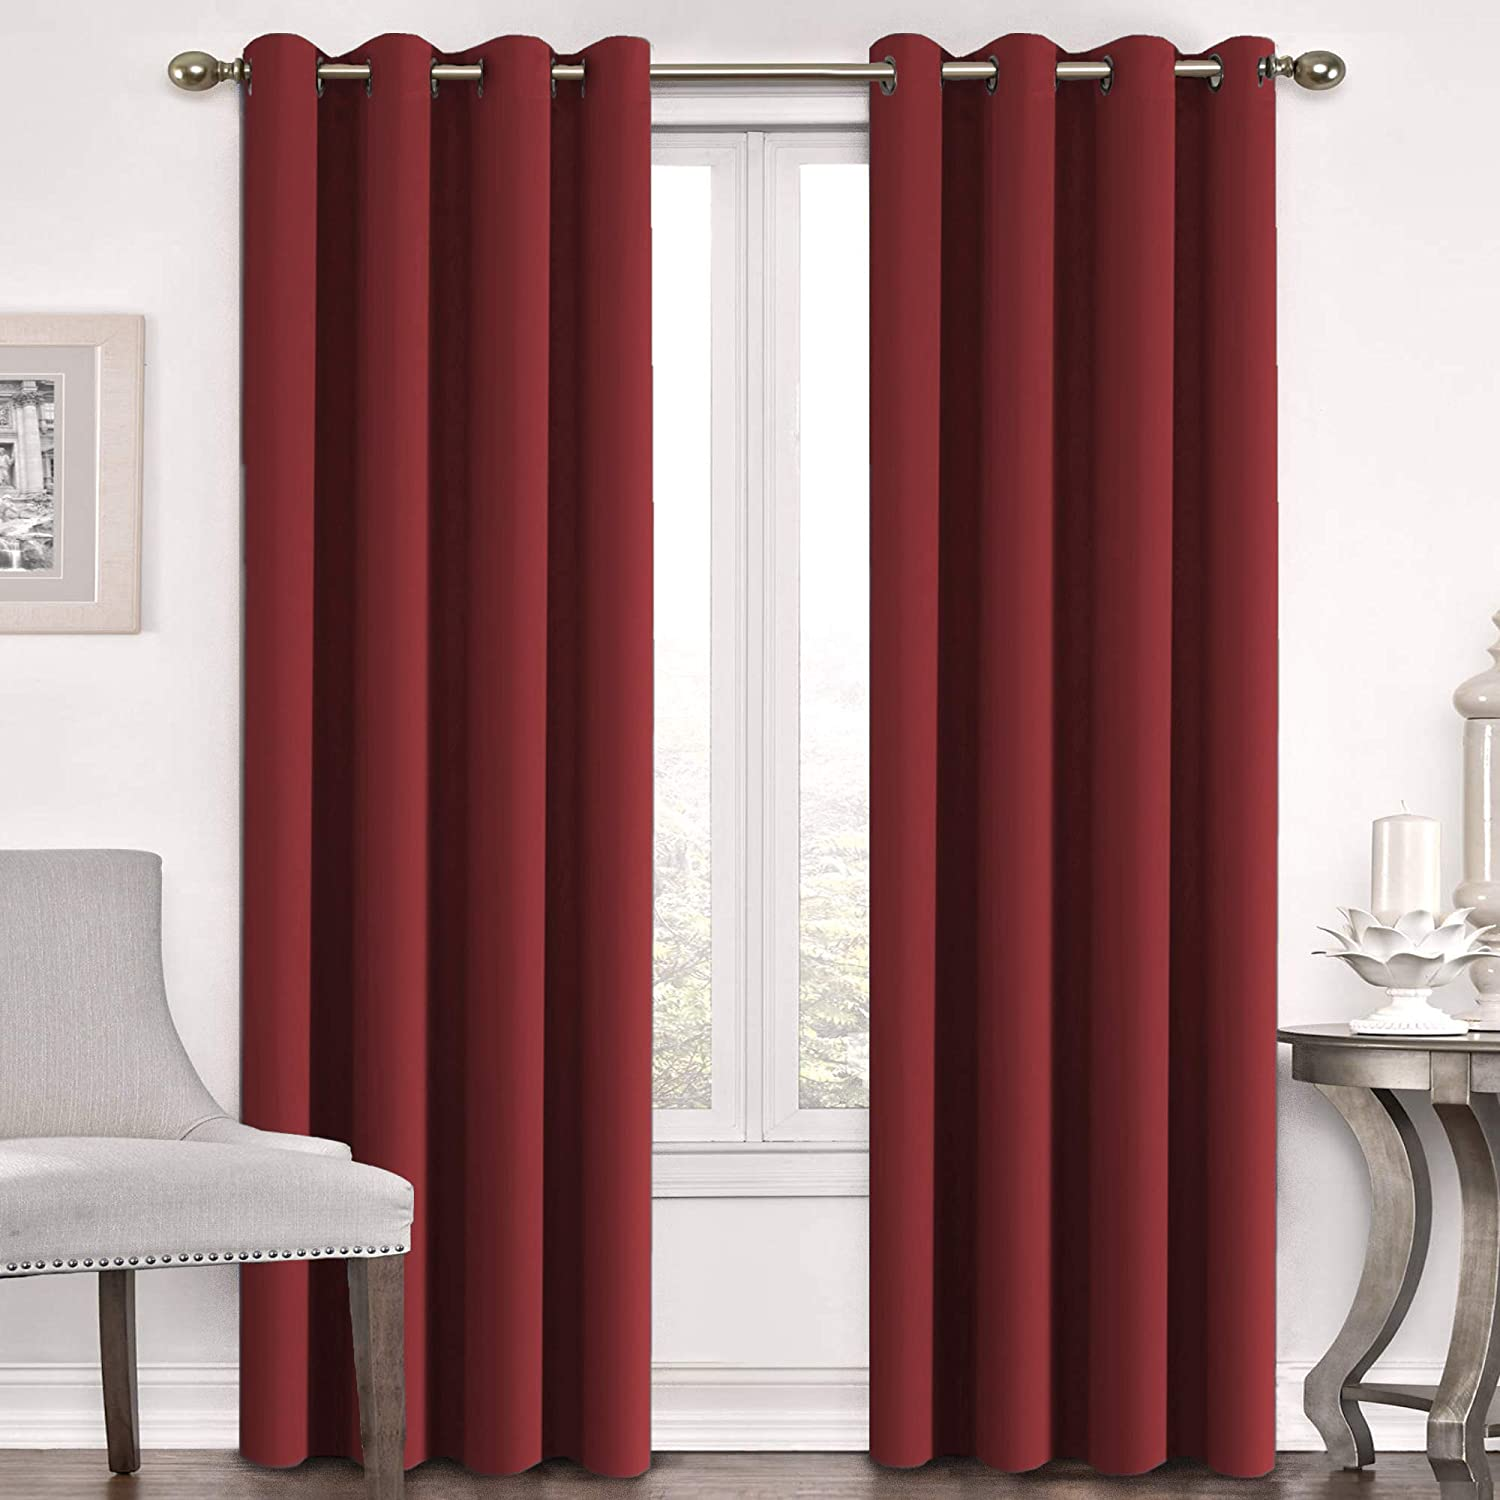 Flamingo P Blackout Curtains Panels for Bedroom - Window Treatment Thermal Insulated Solid Grommet Blackout Drapes for Living Room (Set of 2 Panels, 52 by 96 Inch, Cardinal Red)